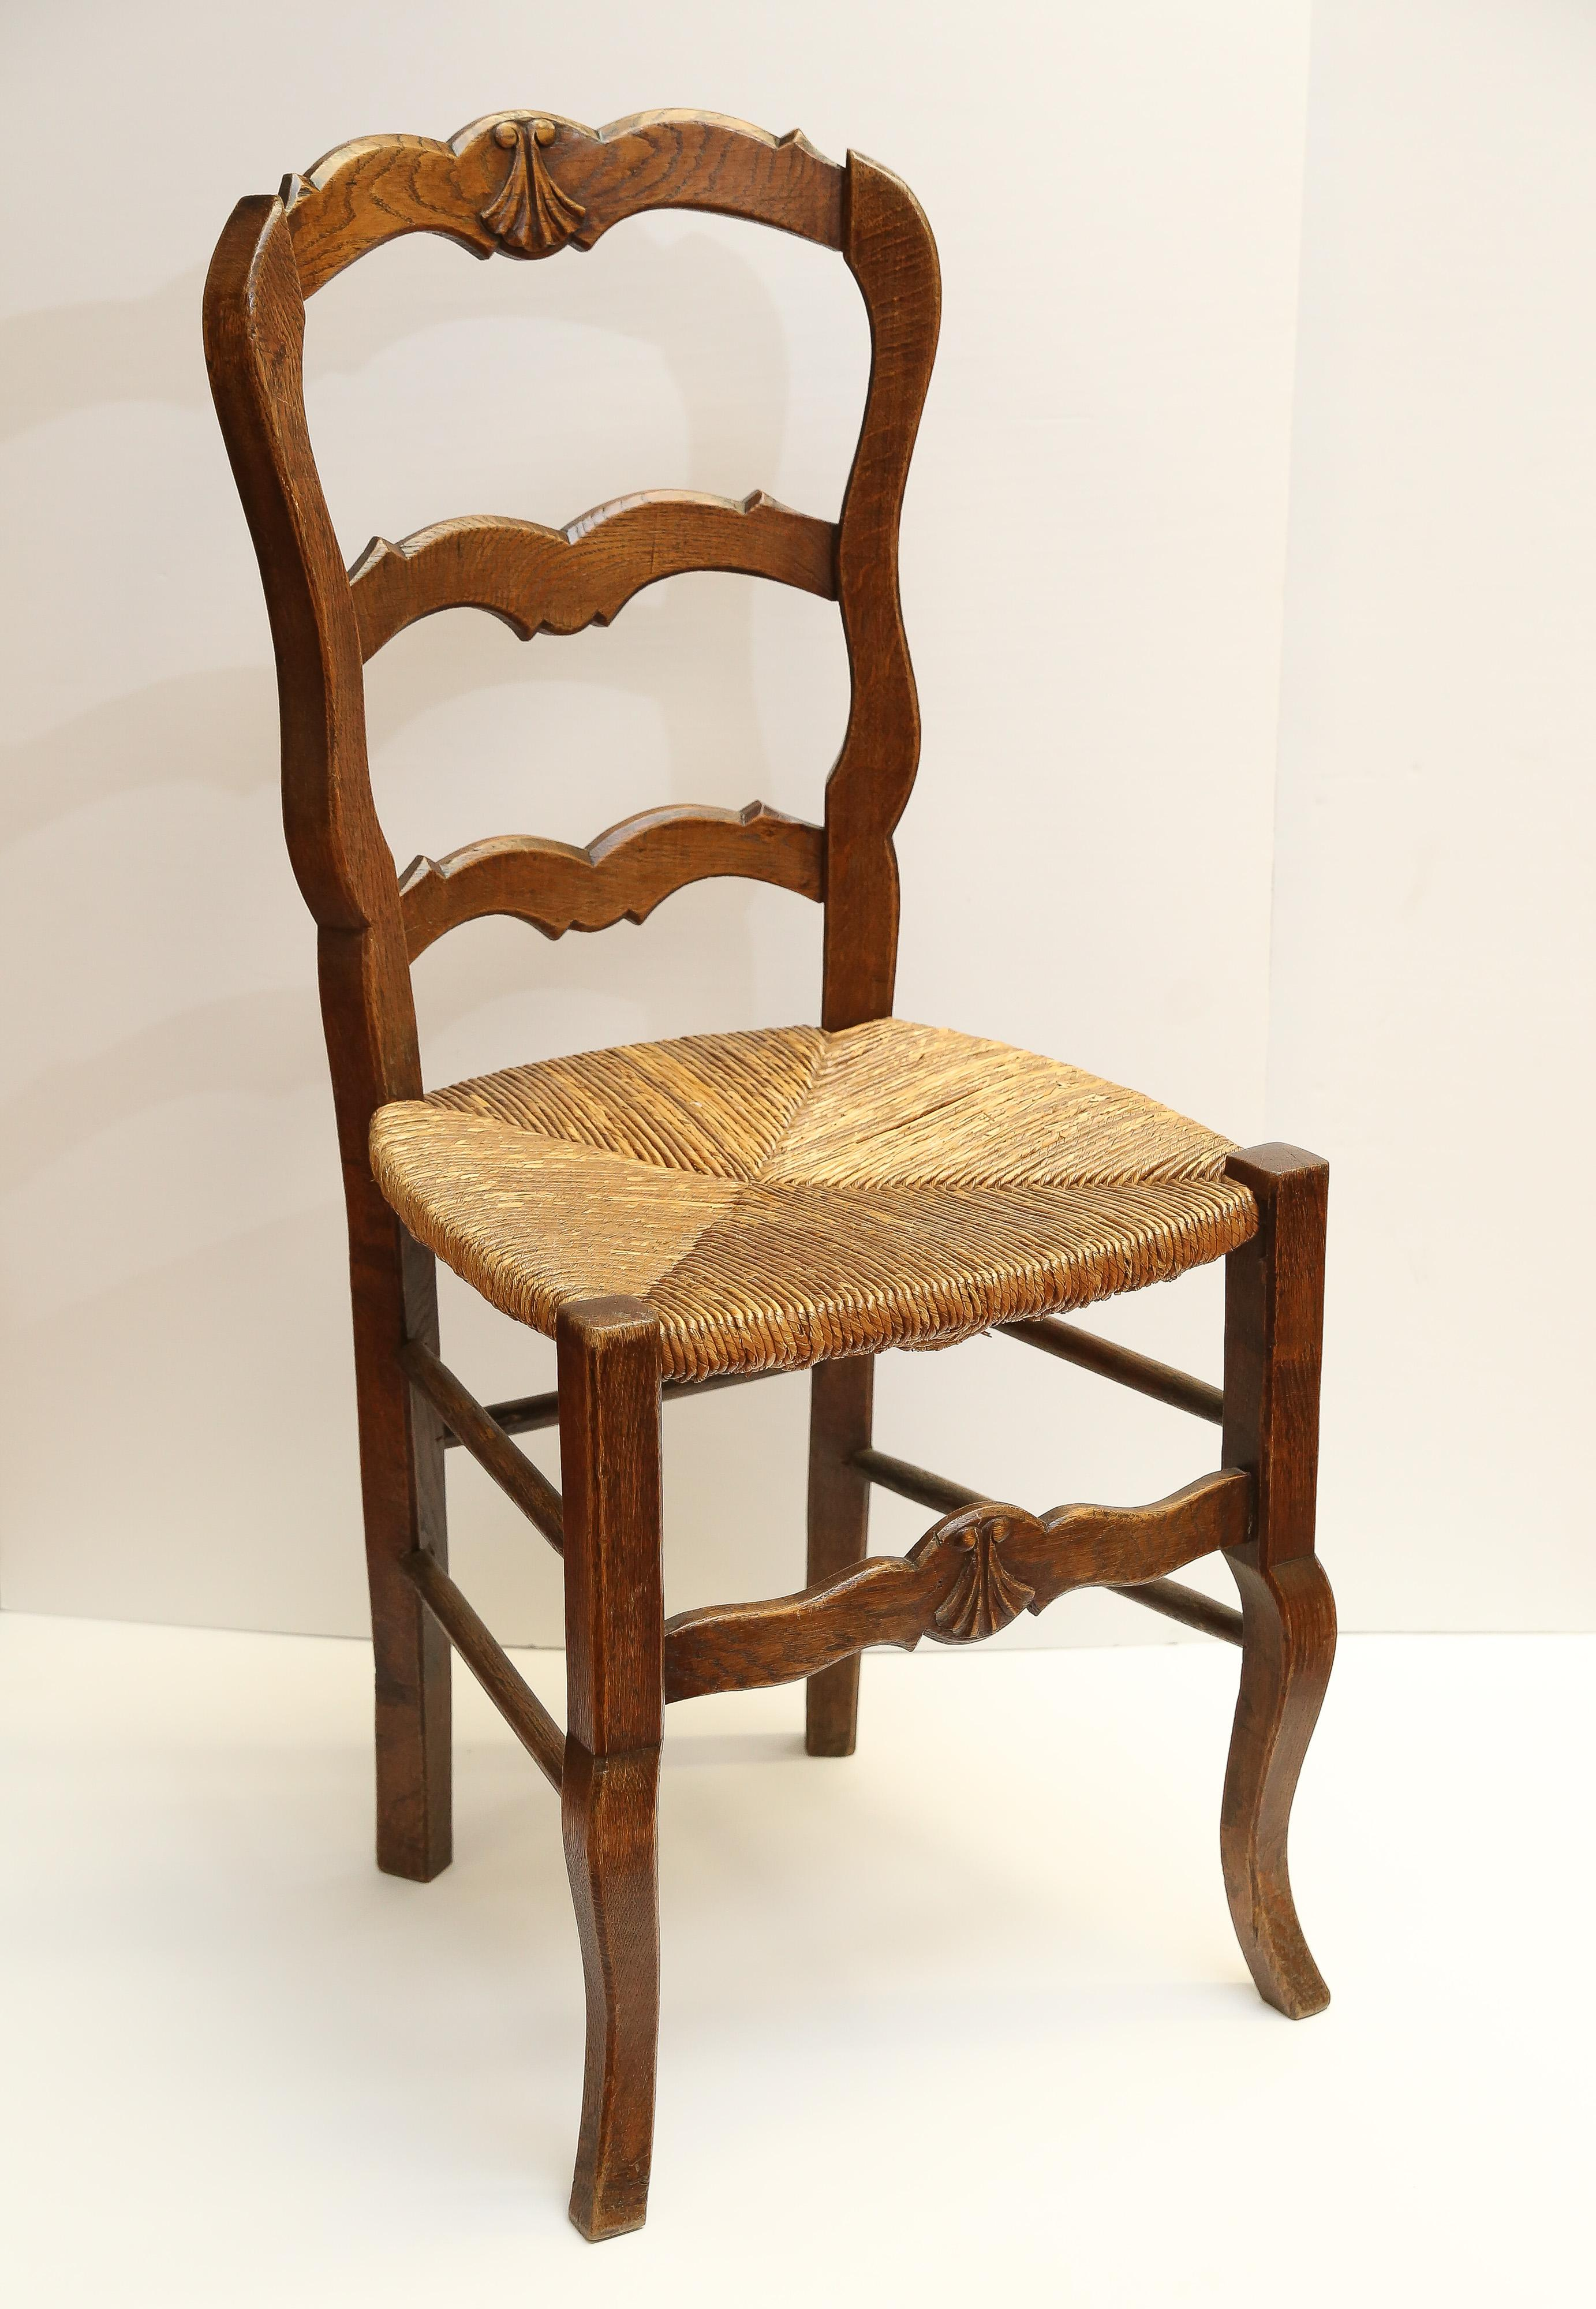 Country French Side Chair W/Rush Seat - Image 2 of 6  sc 1 st  Chairish & Country French Side Chair W/Rush Seat | Chairish